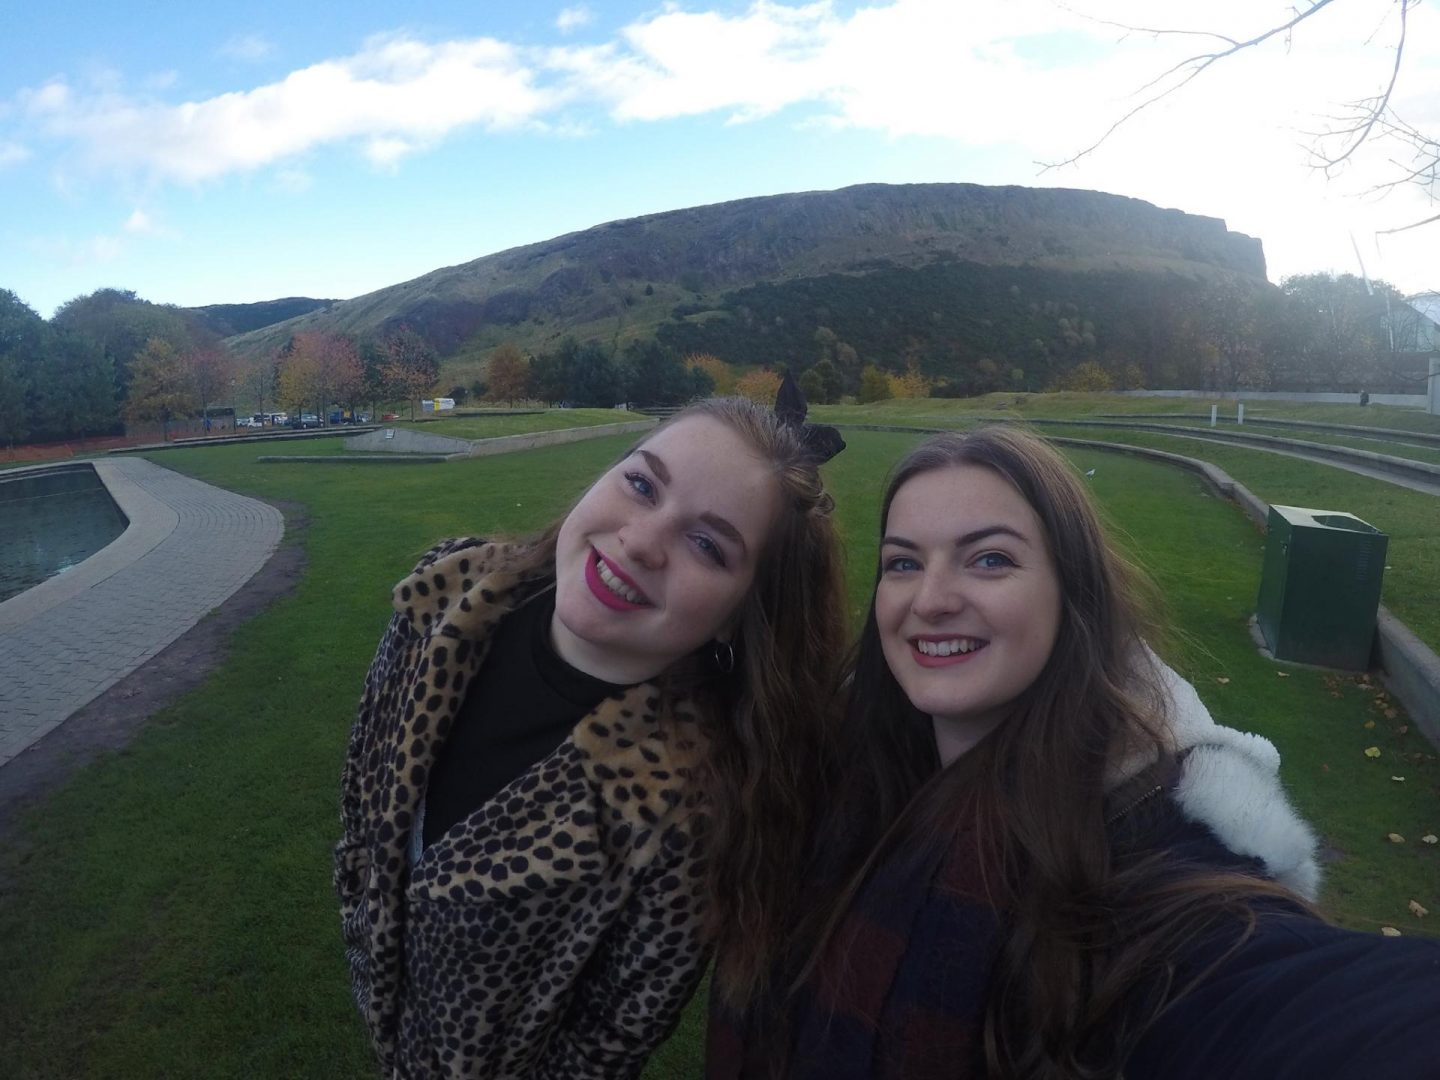 edinburgh-in-32-hours-rachel-nicole-uk-travel-blogger-1